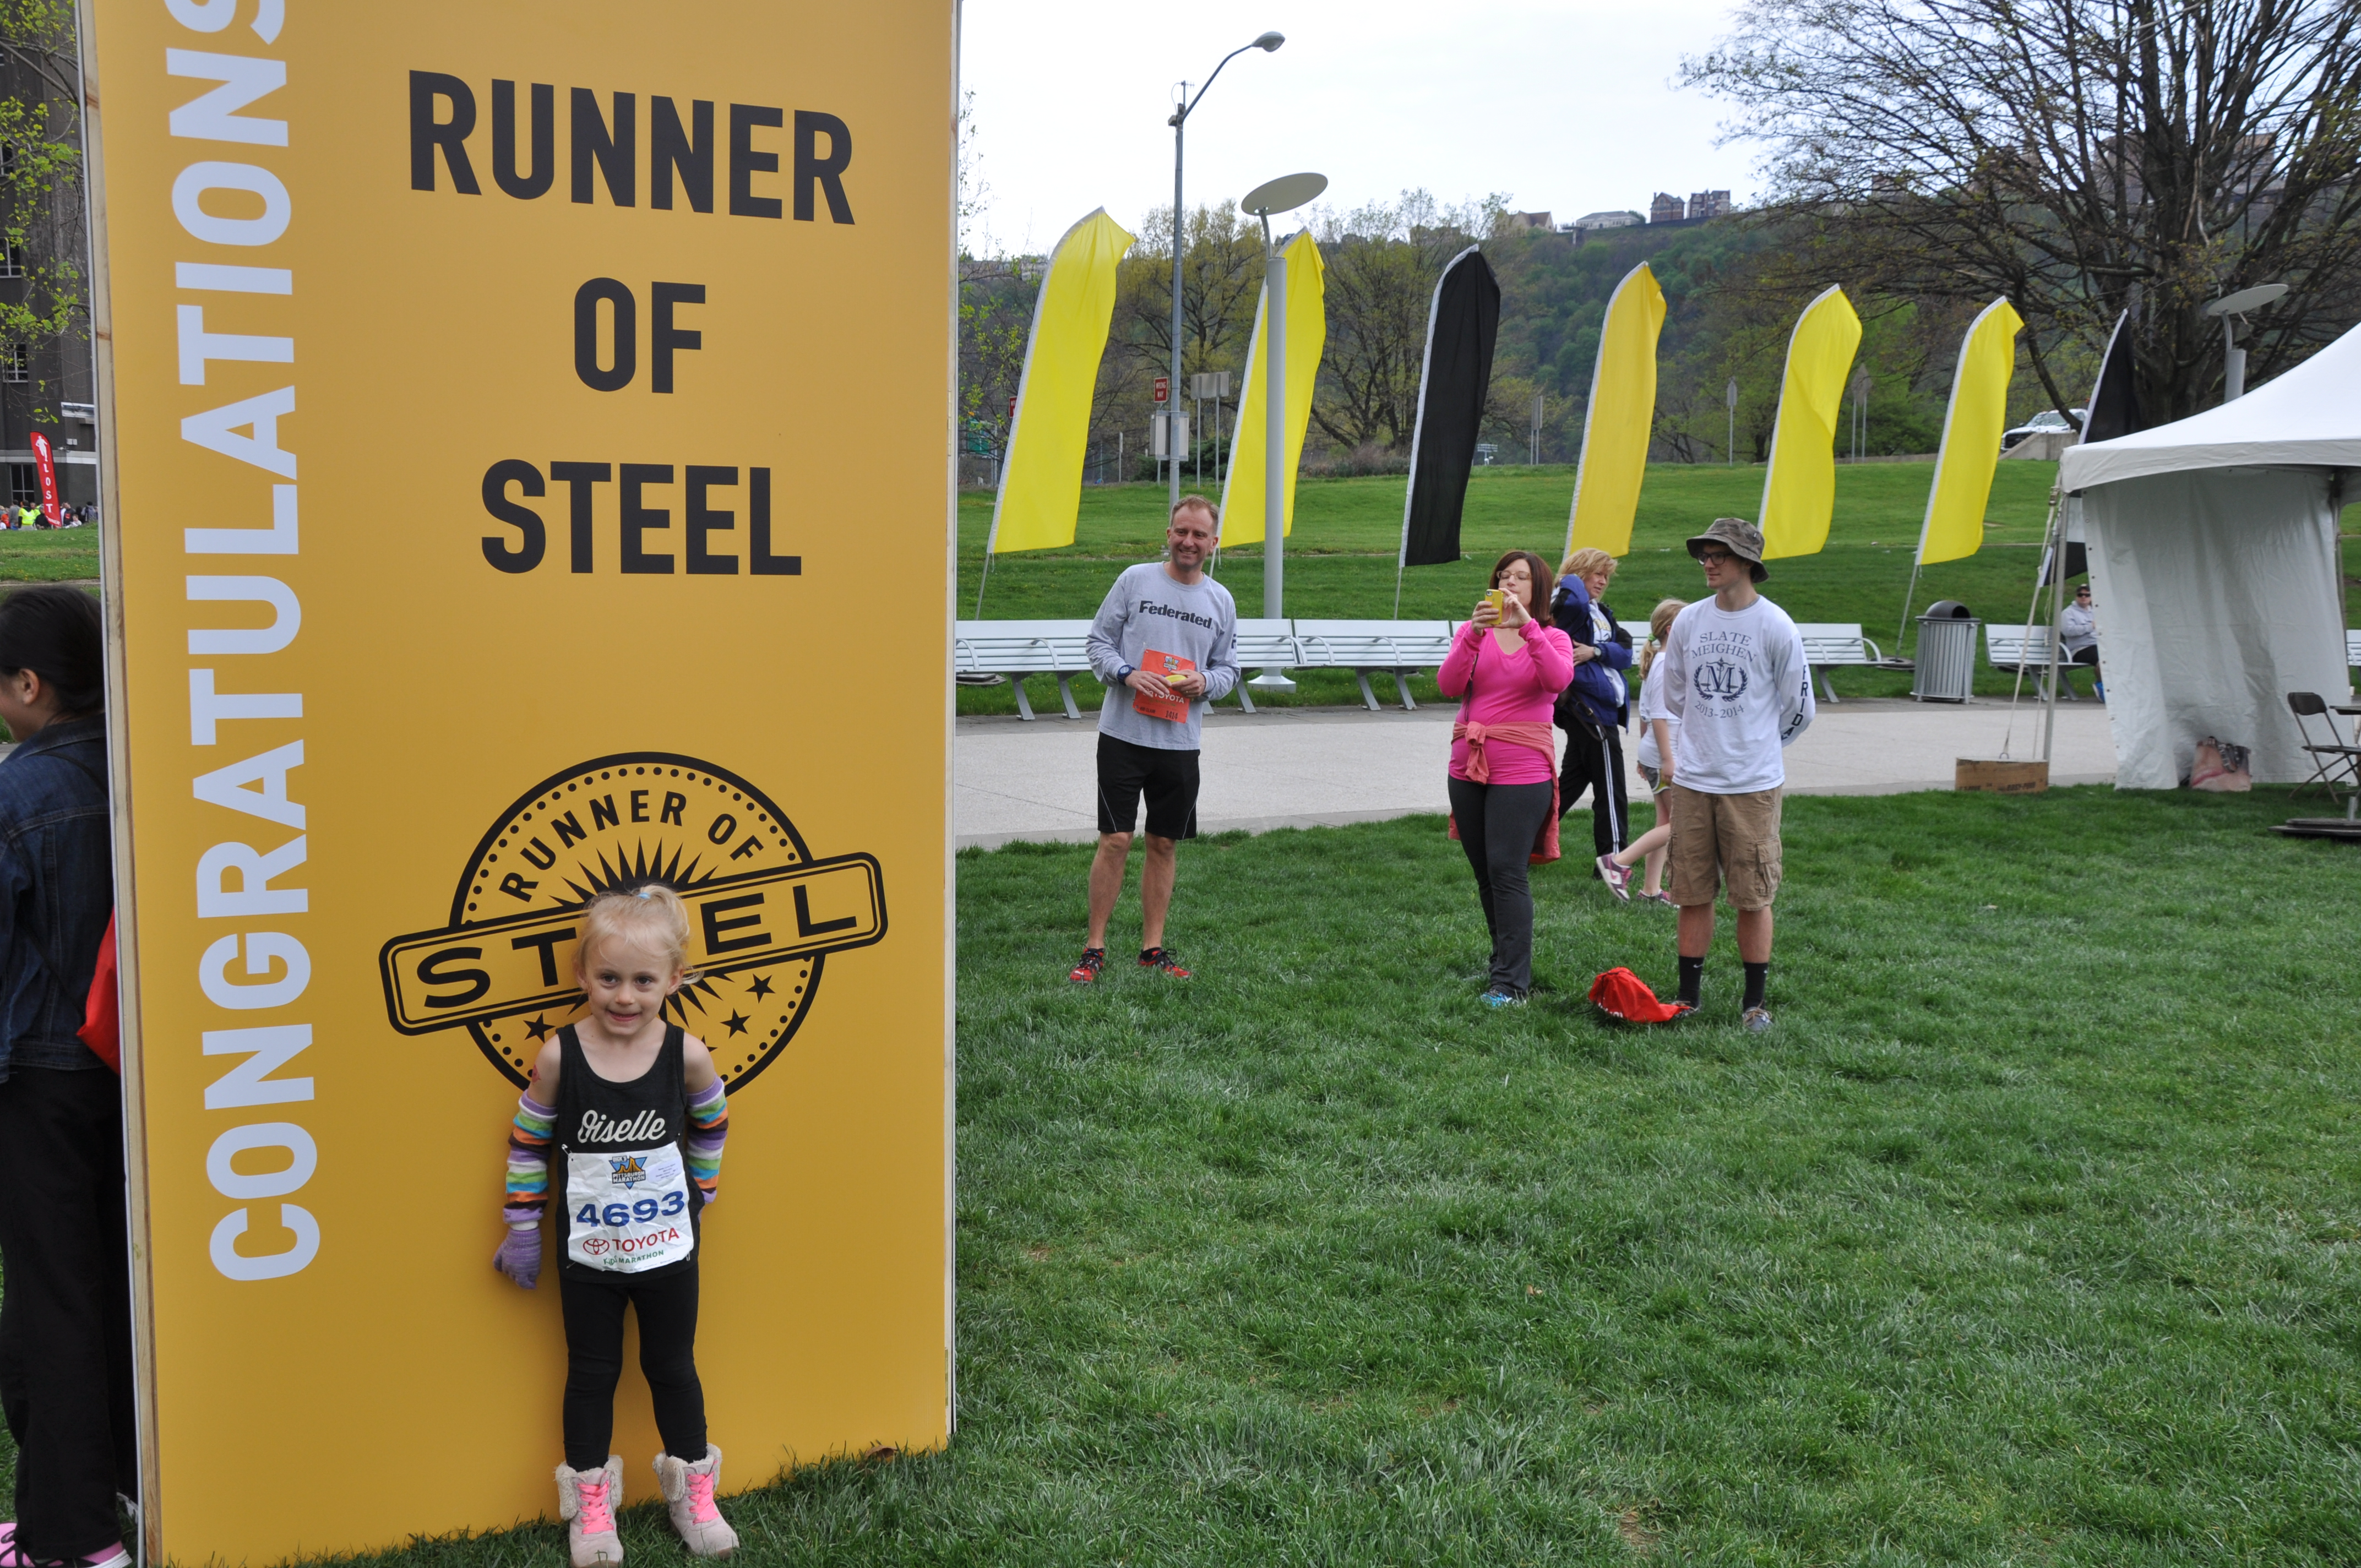 Runner of Steel!